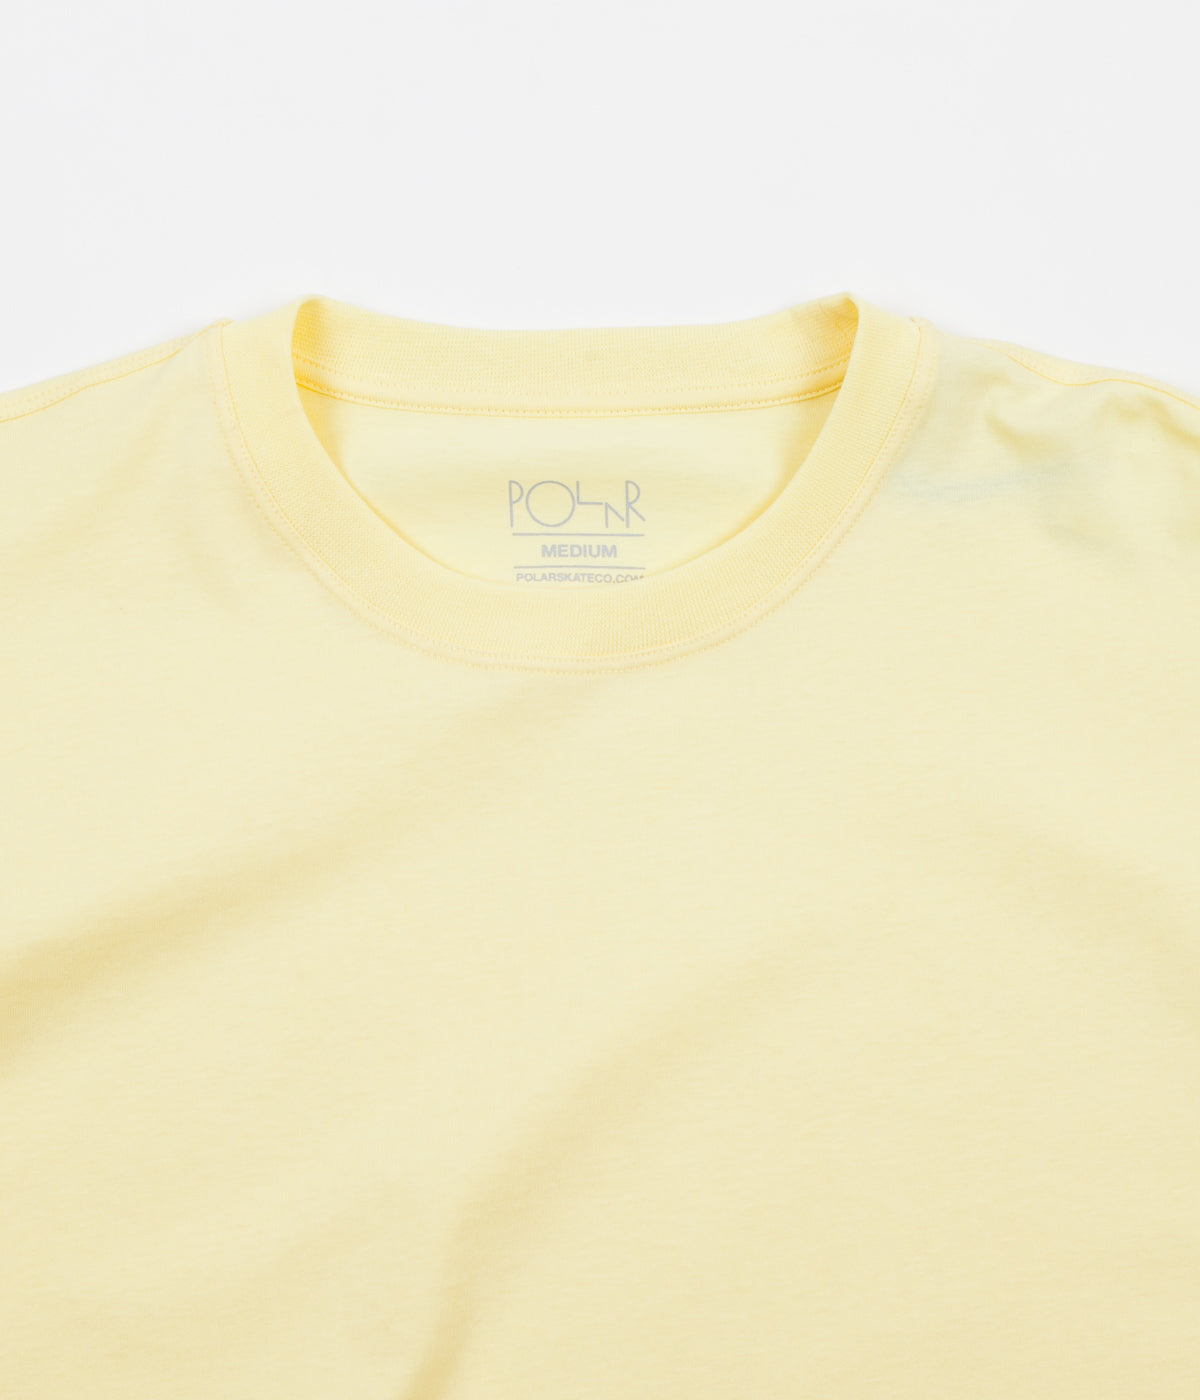 Polar Signature Long Sleeve T-Shirt - Light Yellow